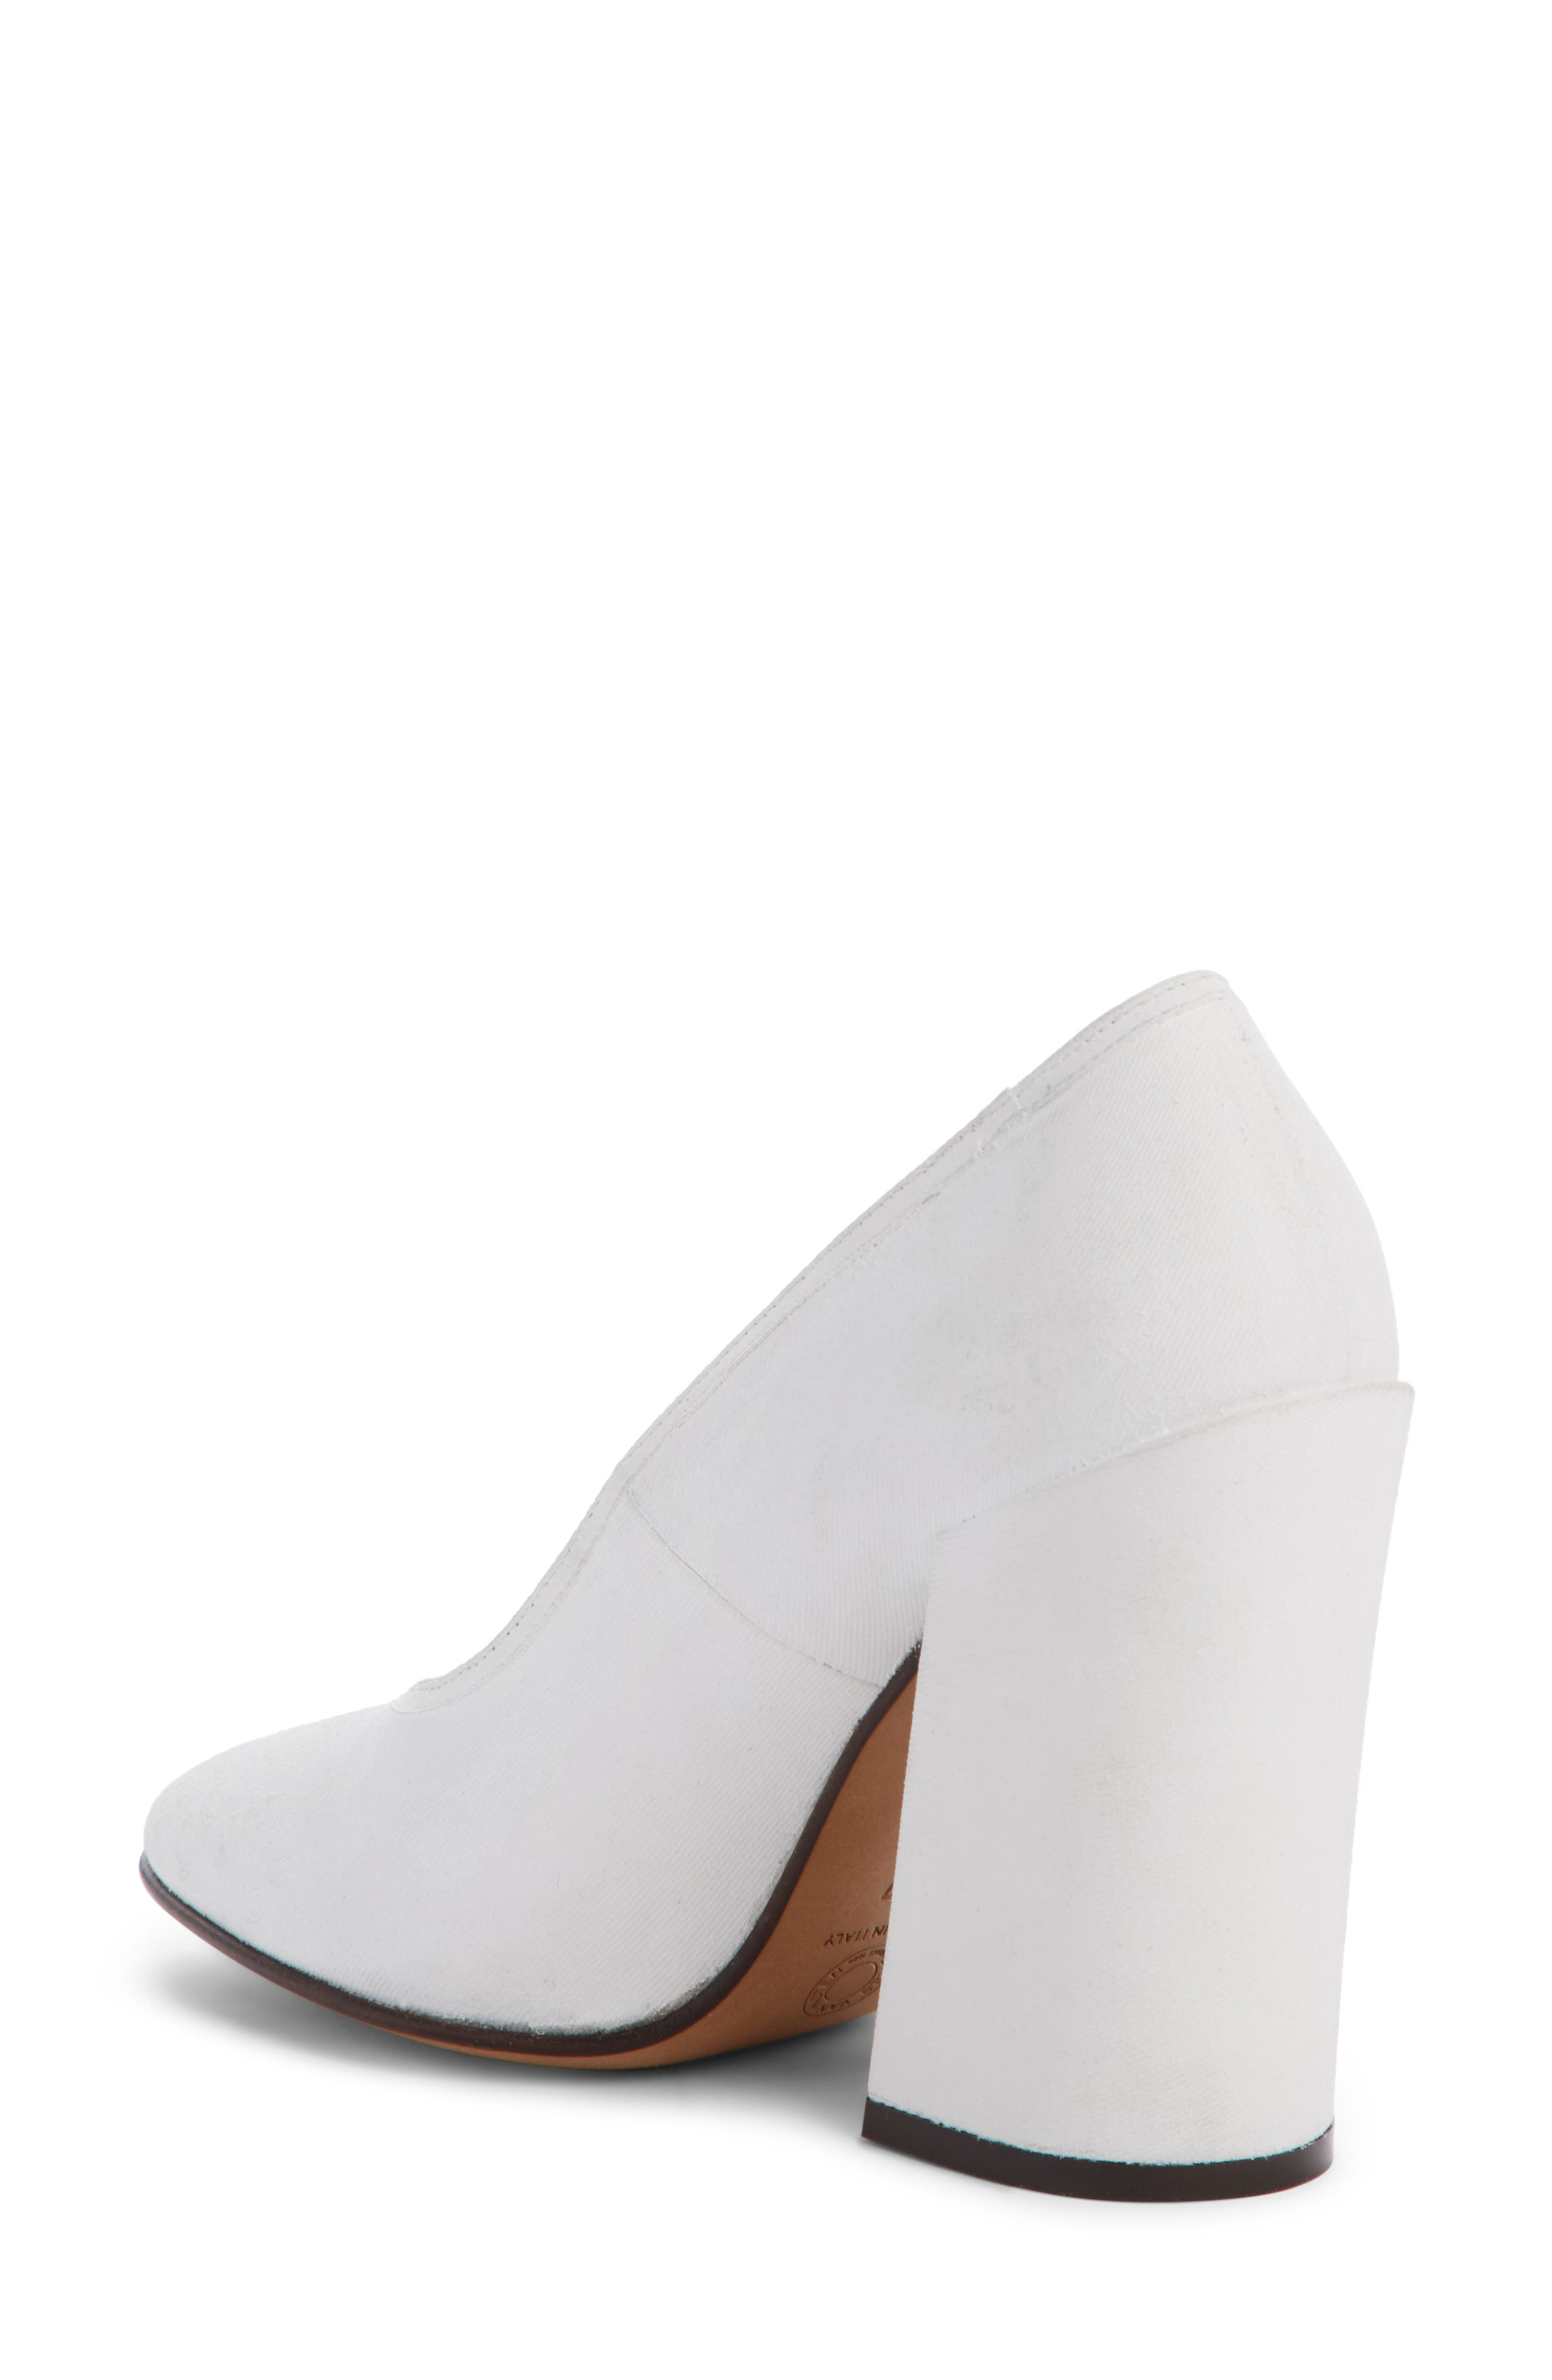 Pointed Toe Pump,                             Alternate thumbnail 2, color,                             100